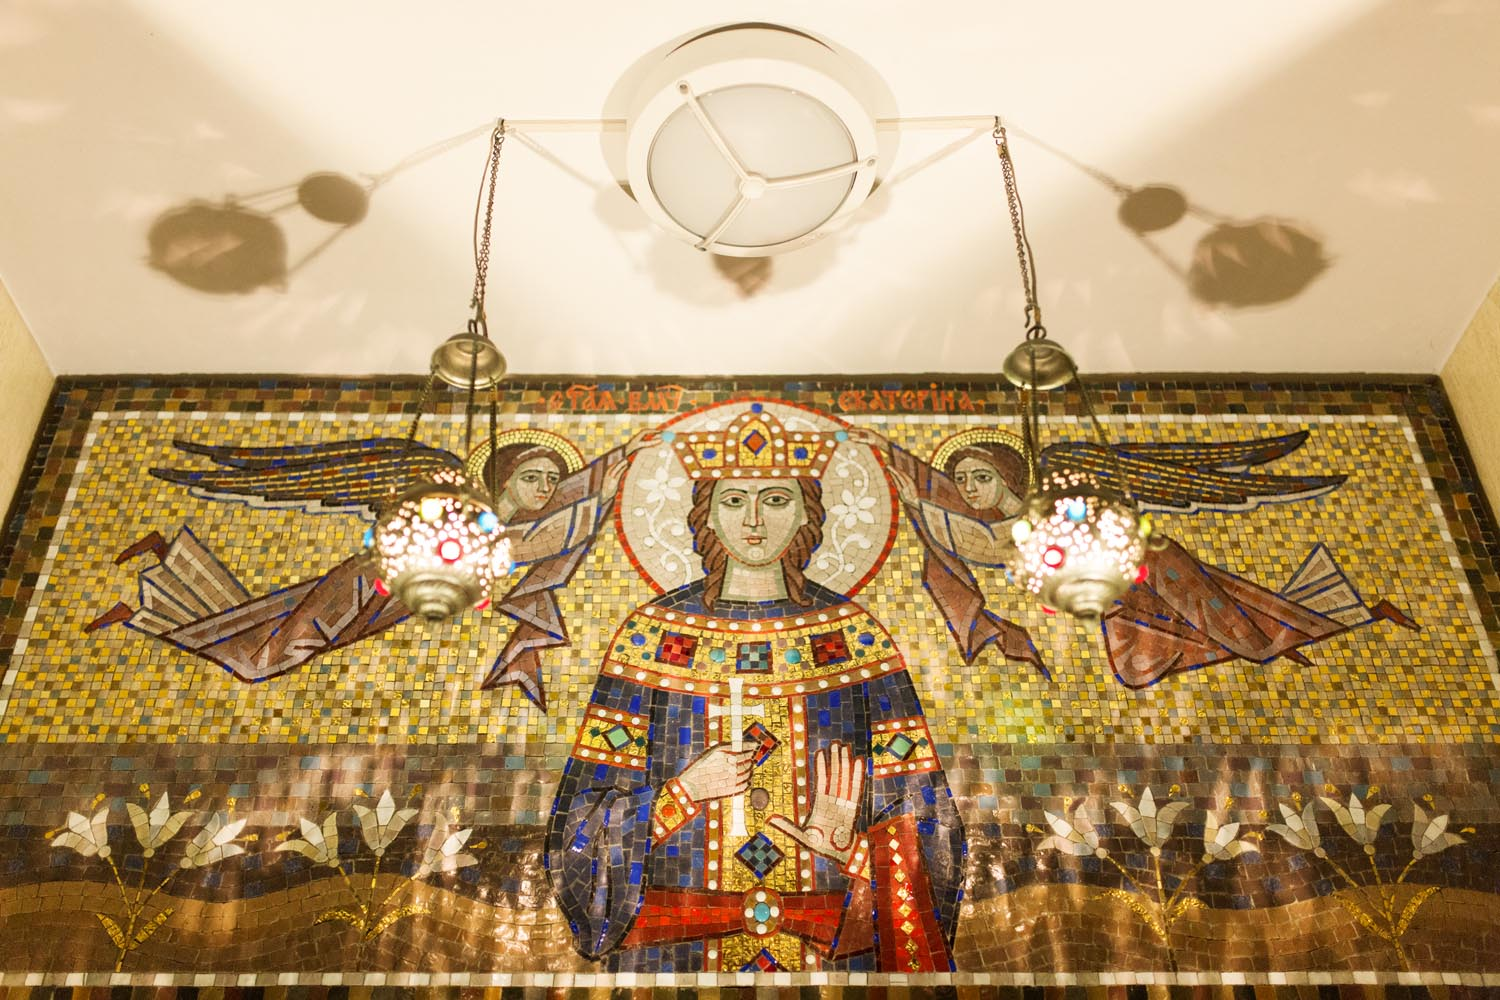 Rome, Italy, Apr 2018.  Mosaic of Saint Catherine Martyr, upon the entrance to the first floor of the church building.